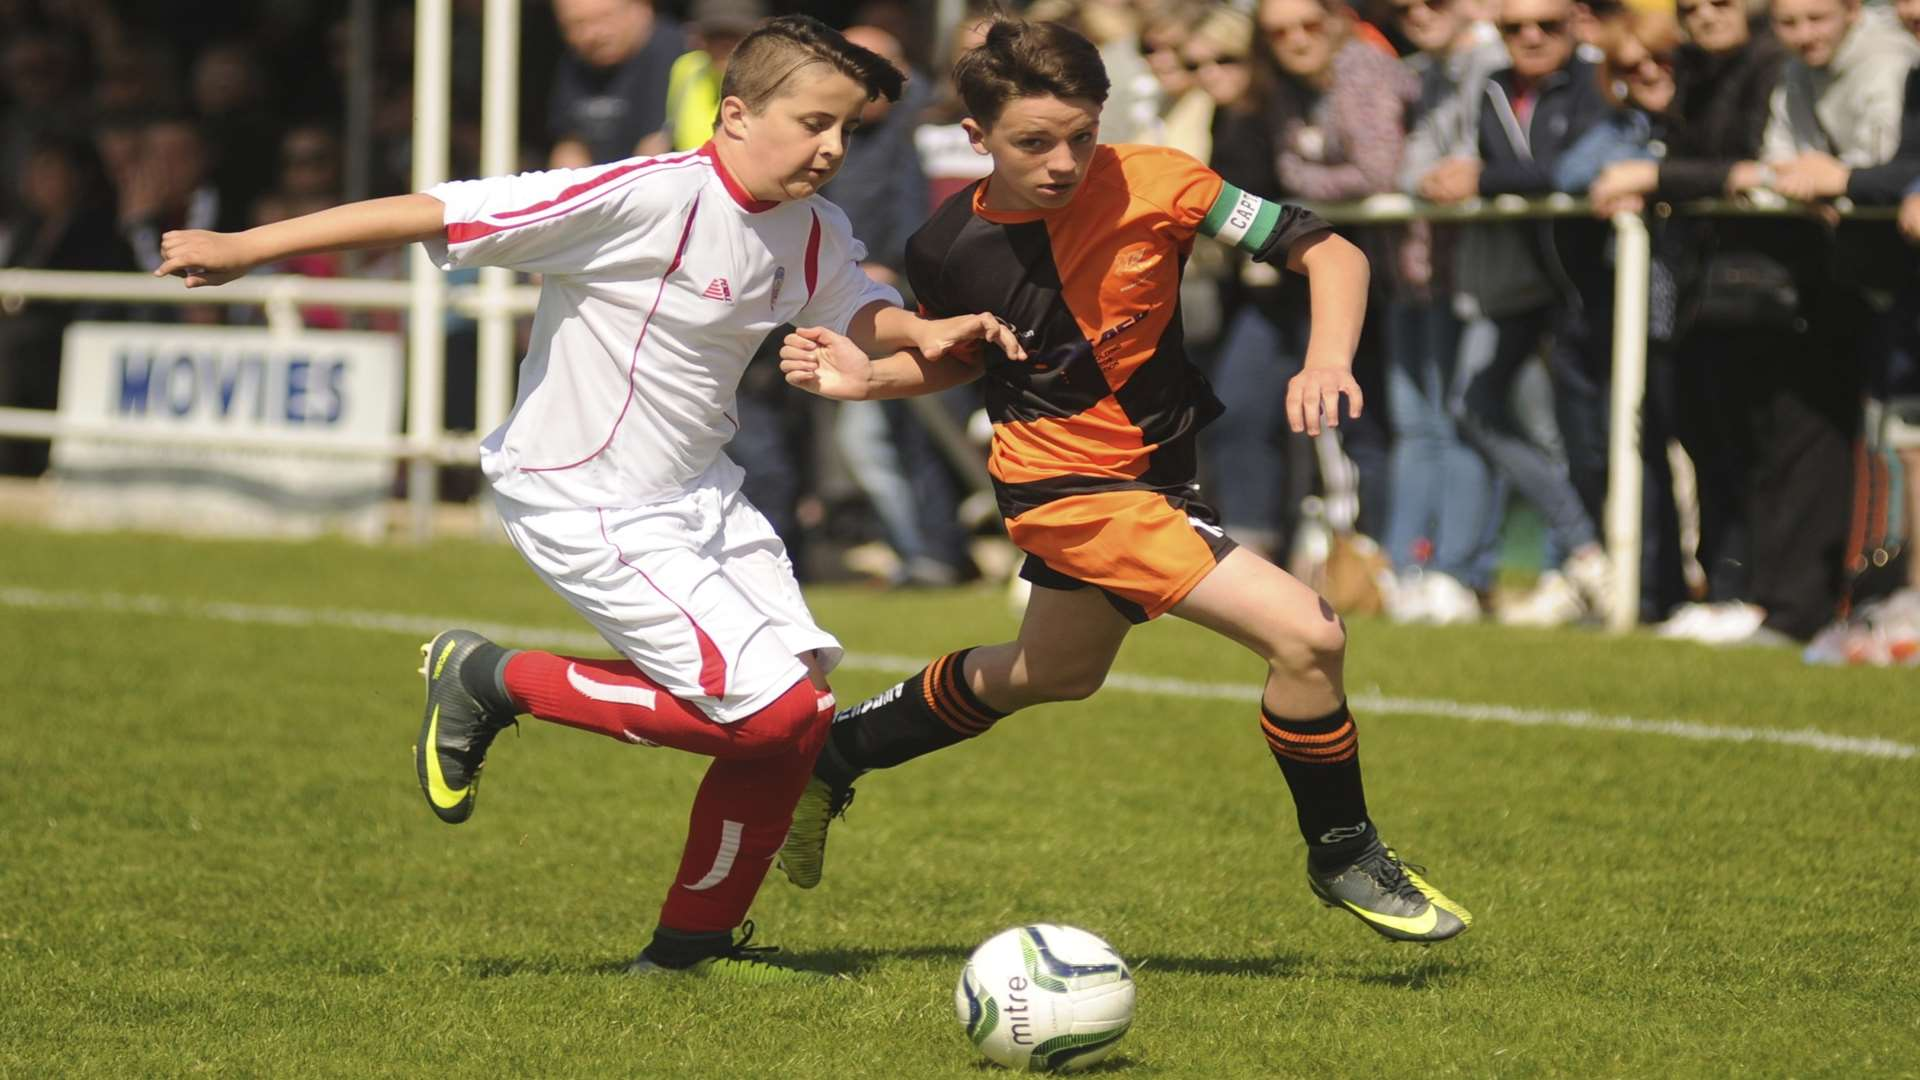 Cuxton 91 (white) and Pegasus 81 battle it out in the Under-13 John Leeds Trophy final Picture: Steve Crispe